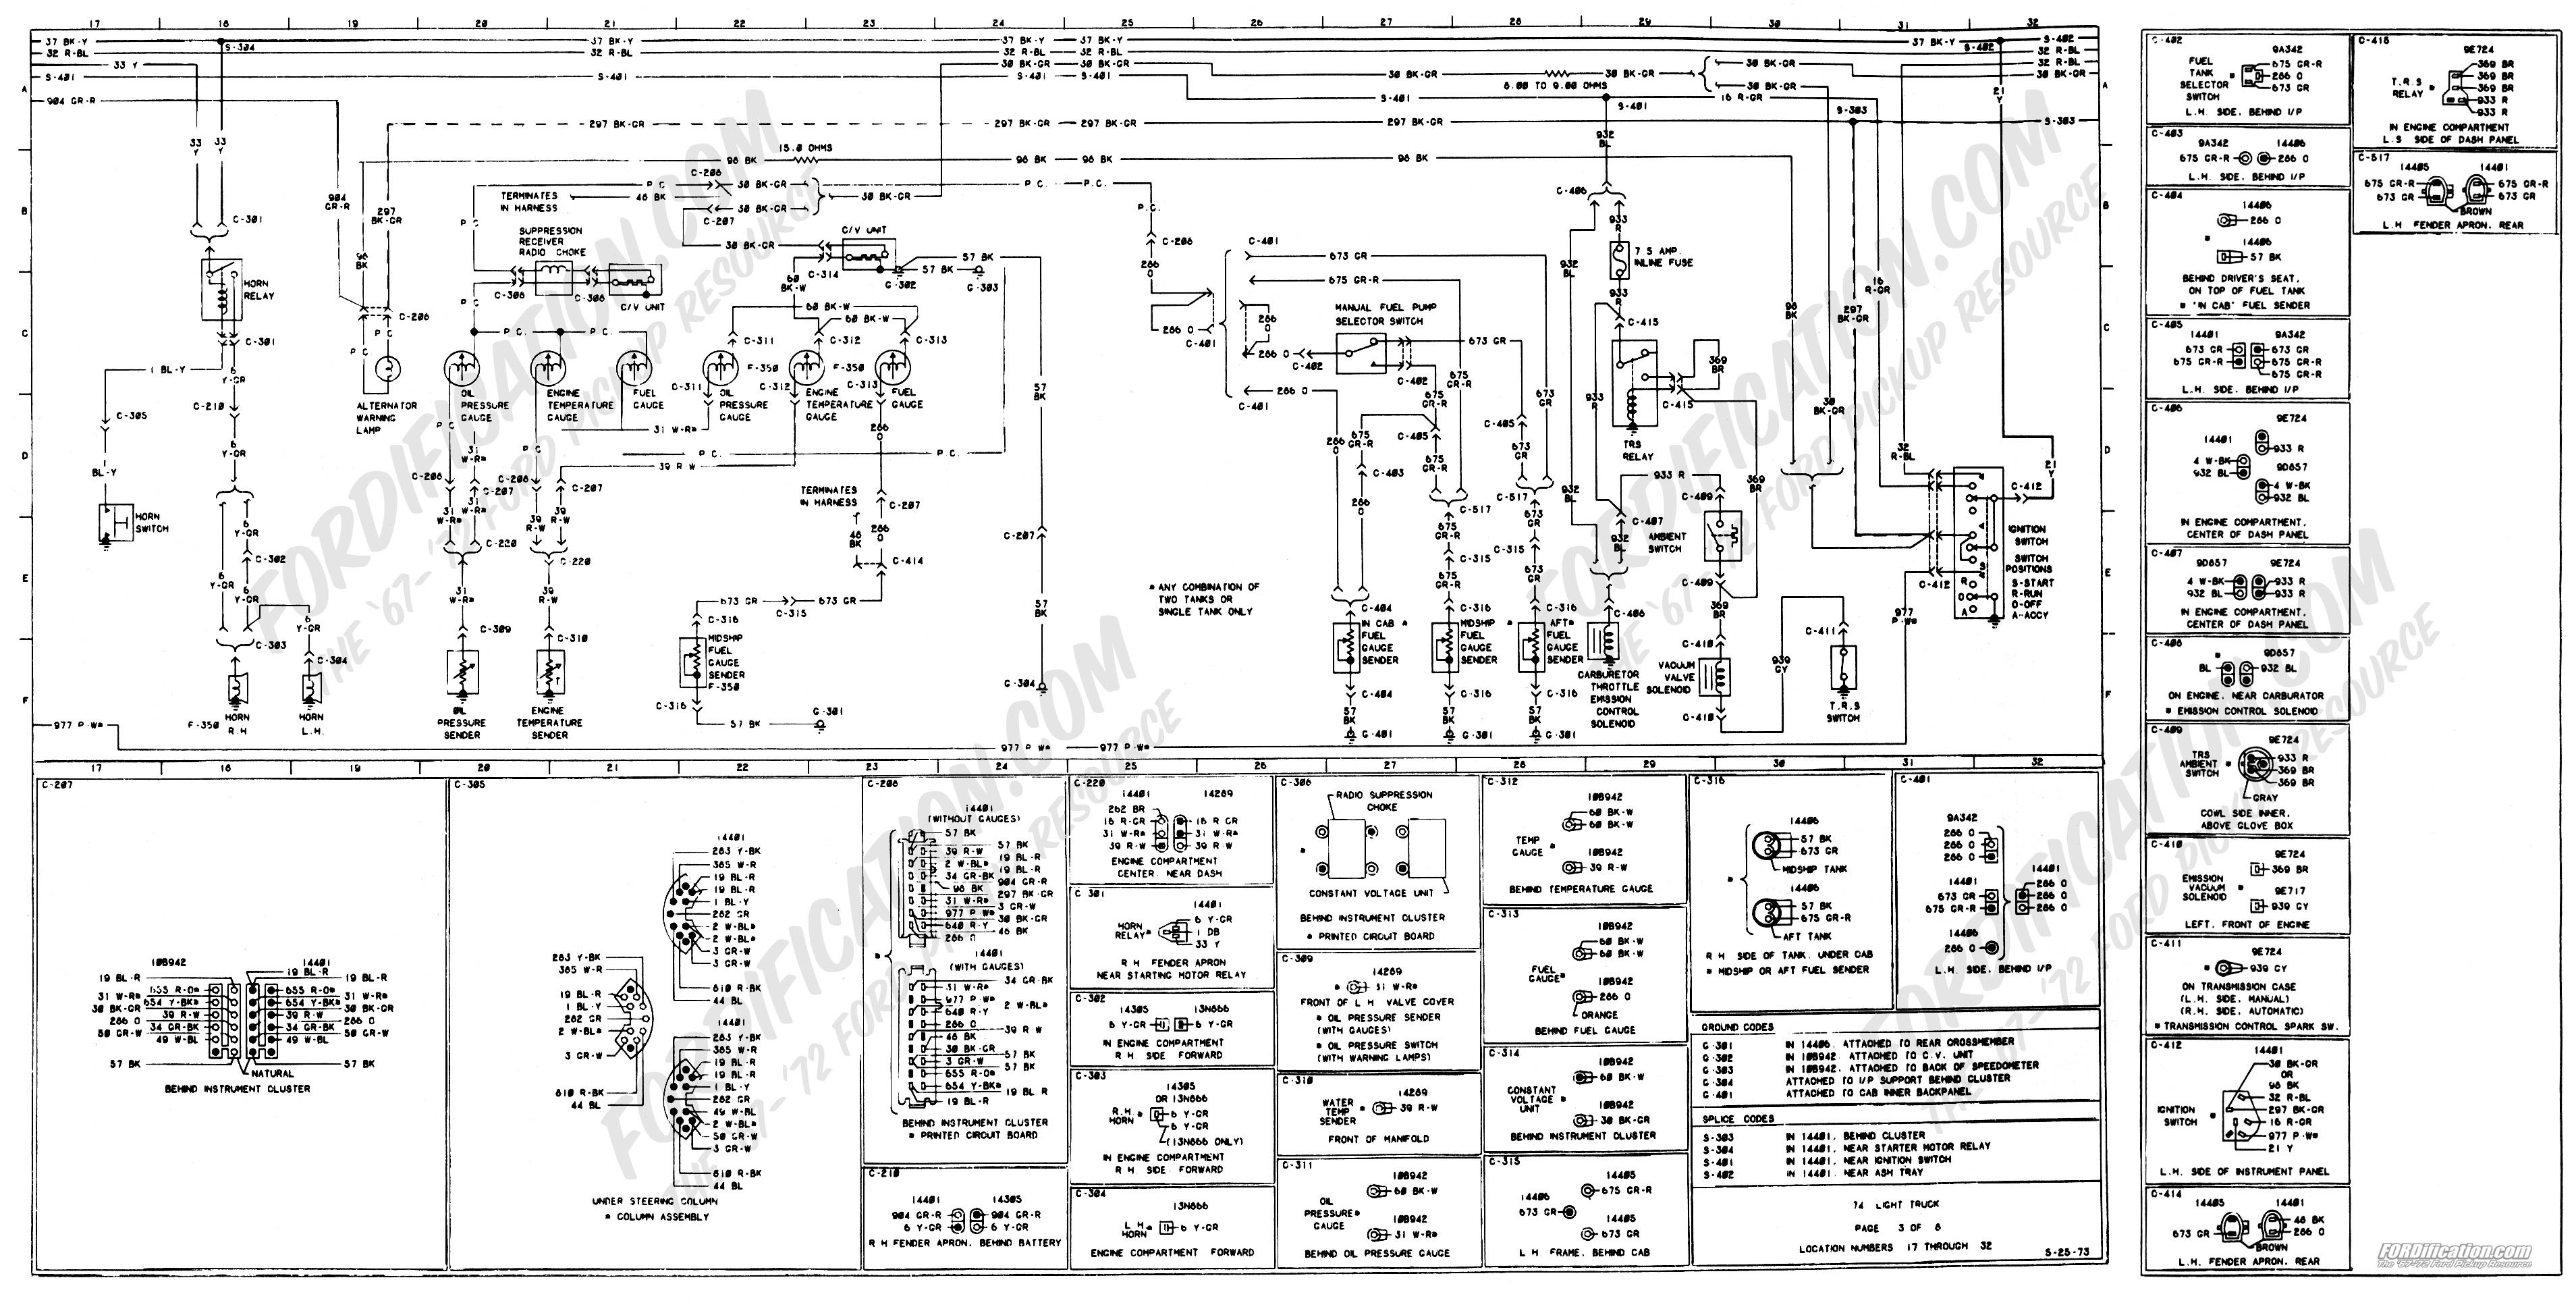 Ford F 150 Engine Diagram For 2000 V 6 Wiring Library 2003 4 6l Dip Sticks F150 V6 1973 1979 Truck Diagrams Schematics Fordification Of